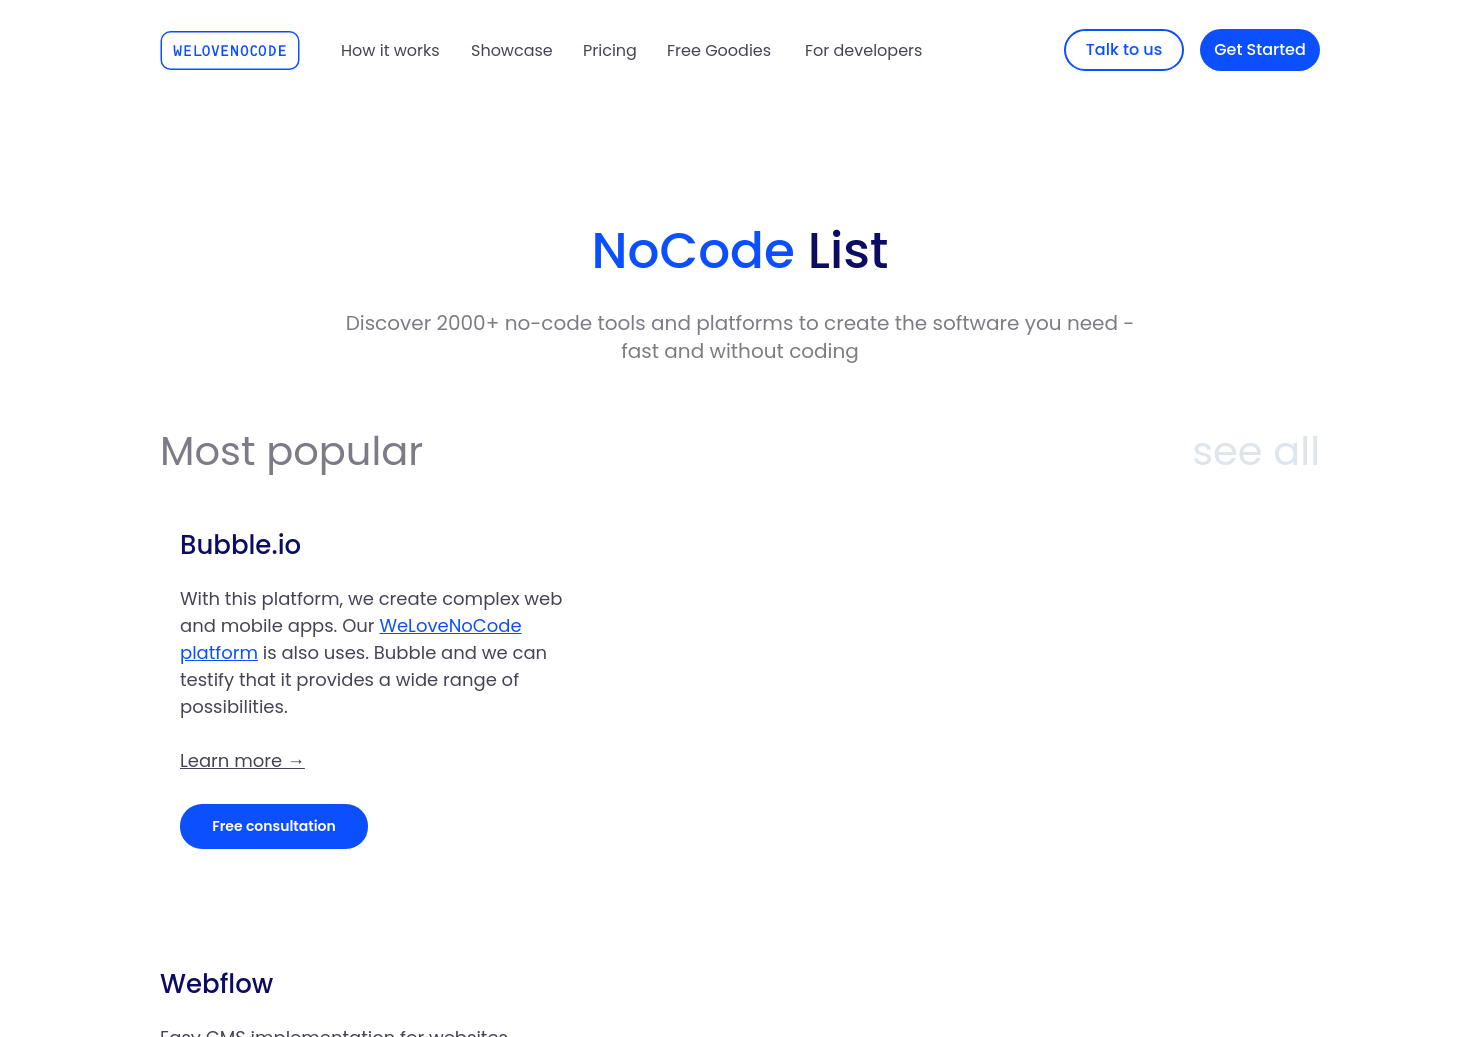 NoCode Tool List by WeLoveNoCode